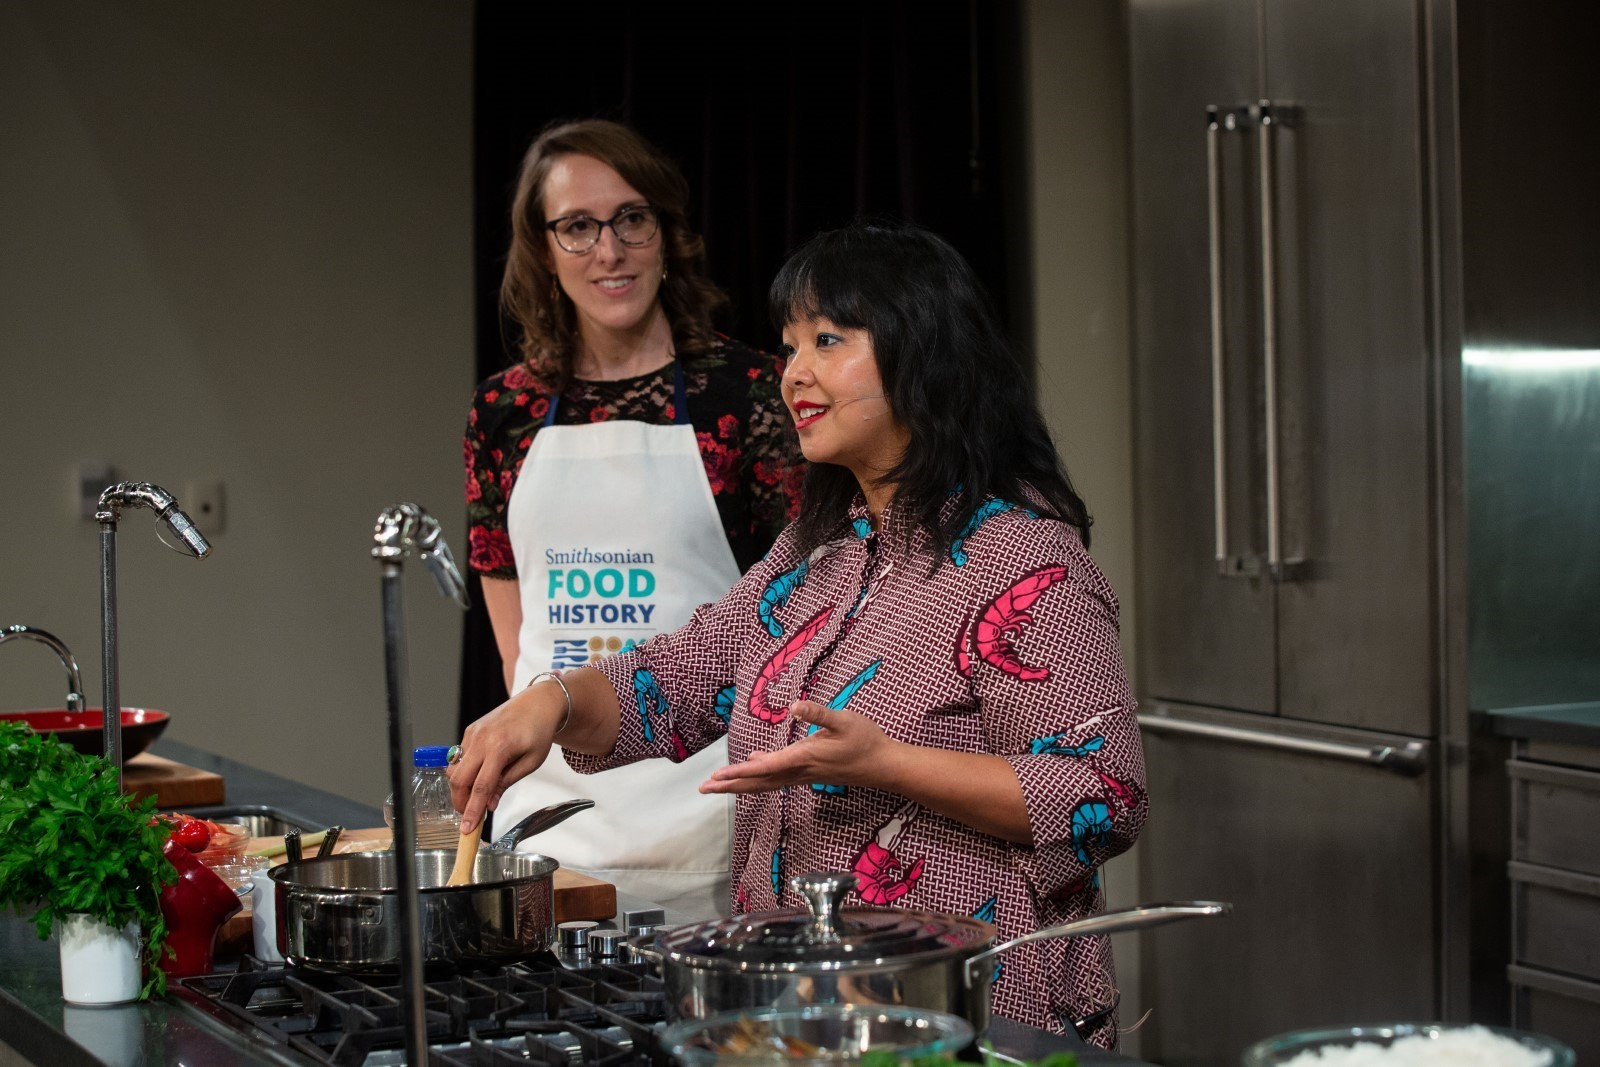 Guest Chef Genevieve Villamora Giving a Cooking Demonstration with Historian Ashley Rose Young